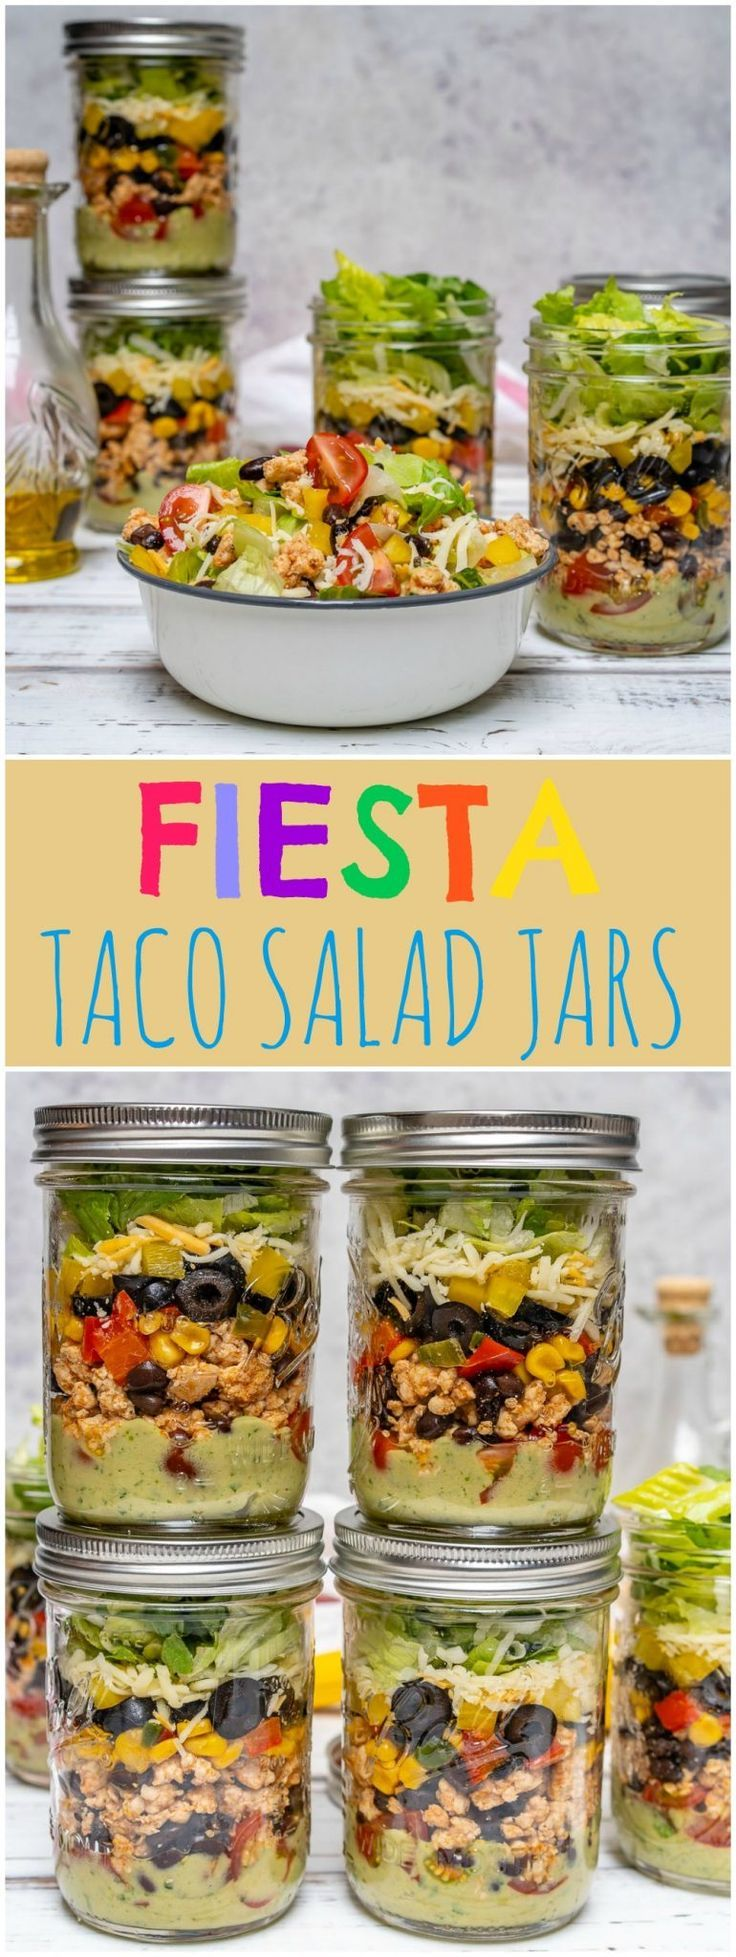 Fiesta Taco Salad-in-a-jar with Creamy Avocado + Cilantro Dressing #tacosalad